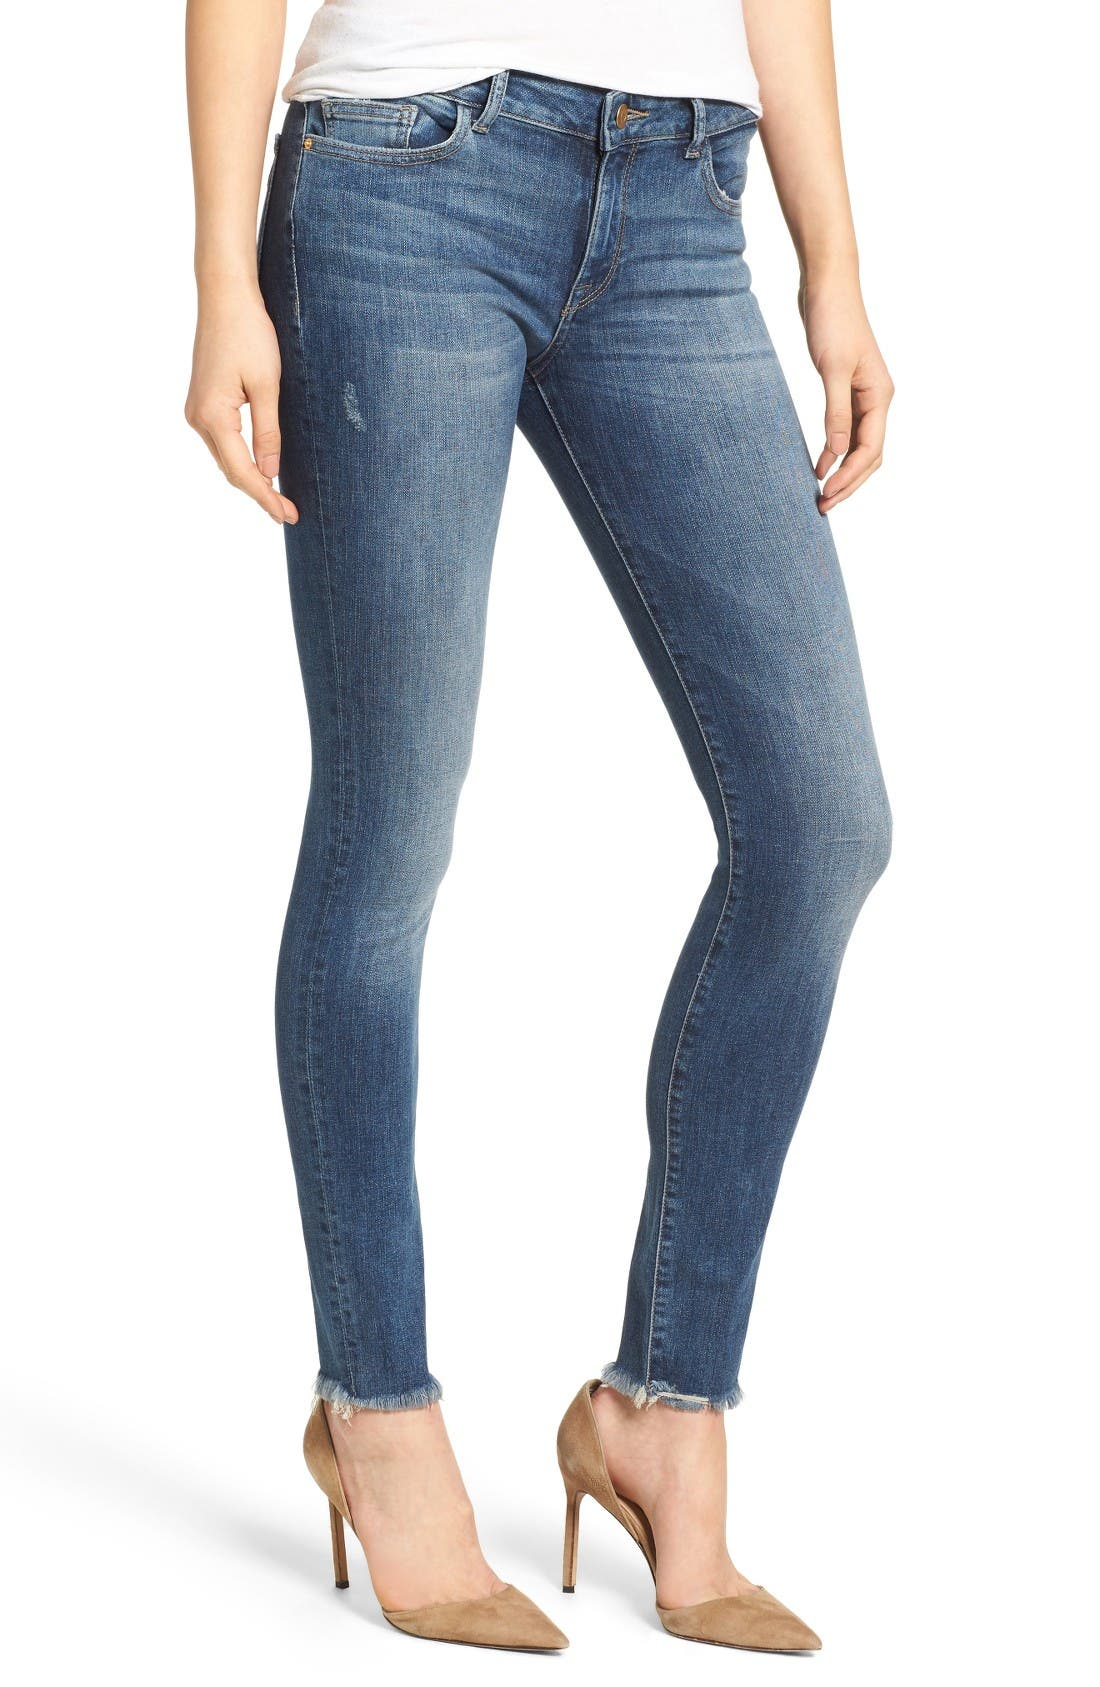 Alternate Image 1 Selected - DL1961 Florence Instasculpt Skinny Jeans (Wicked)